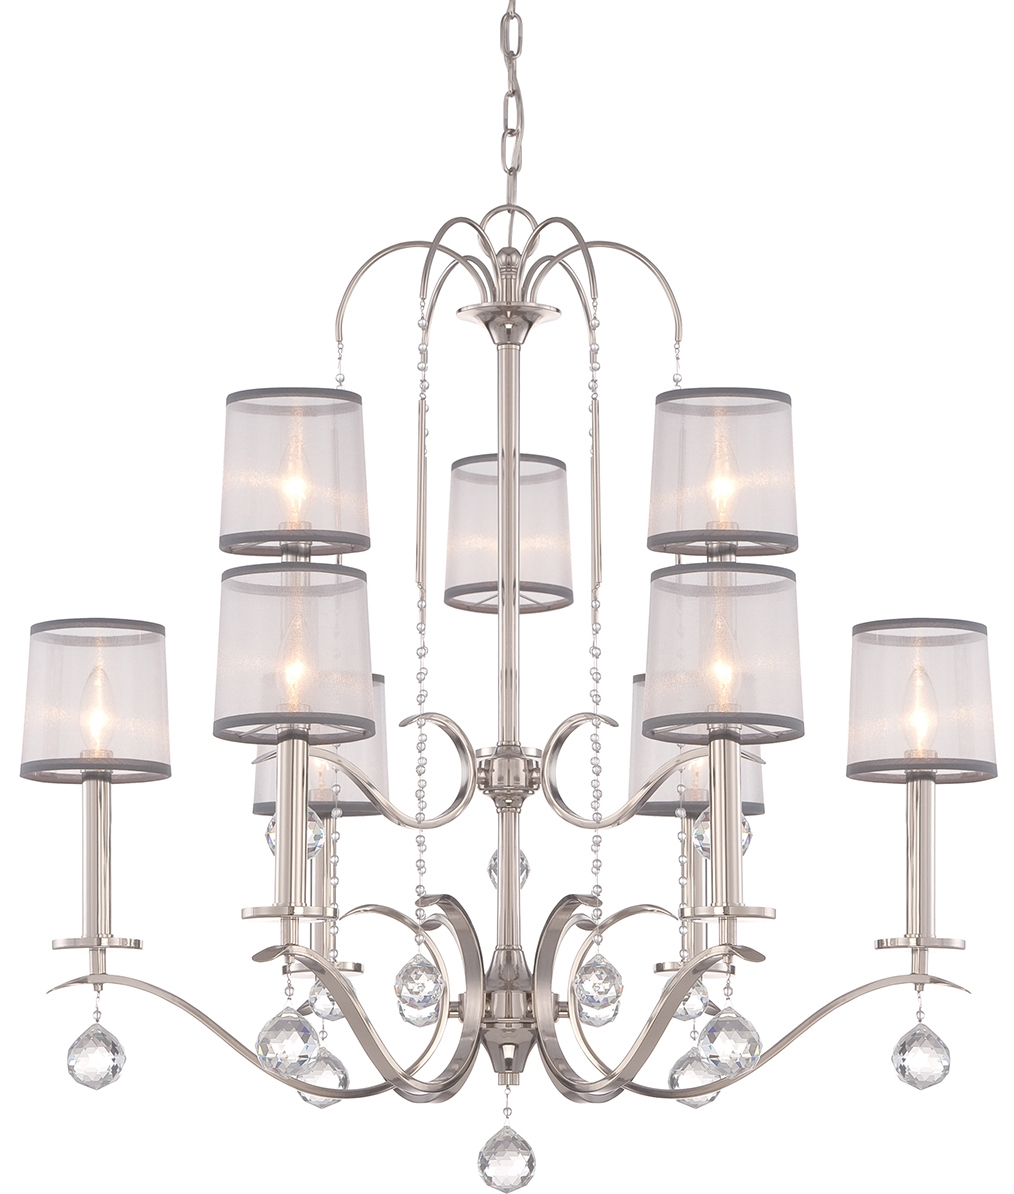 Silver Finish Chandelier With Crystal Droplets And Organza